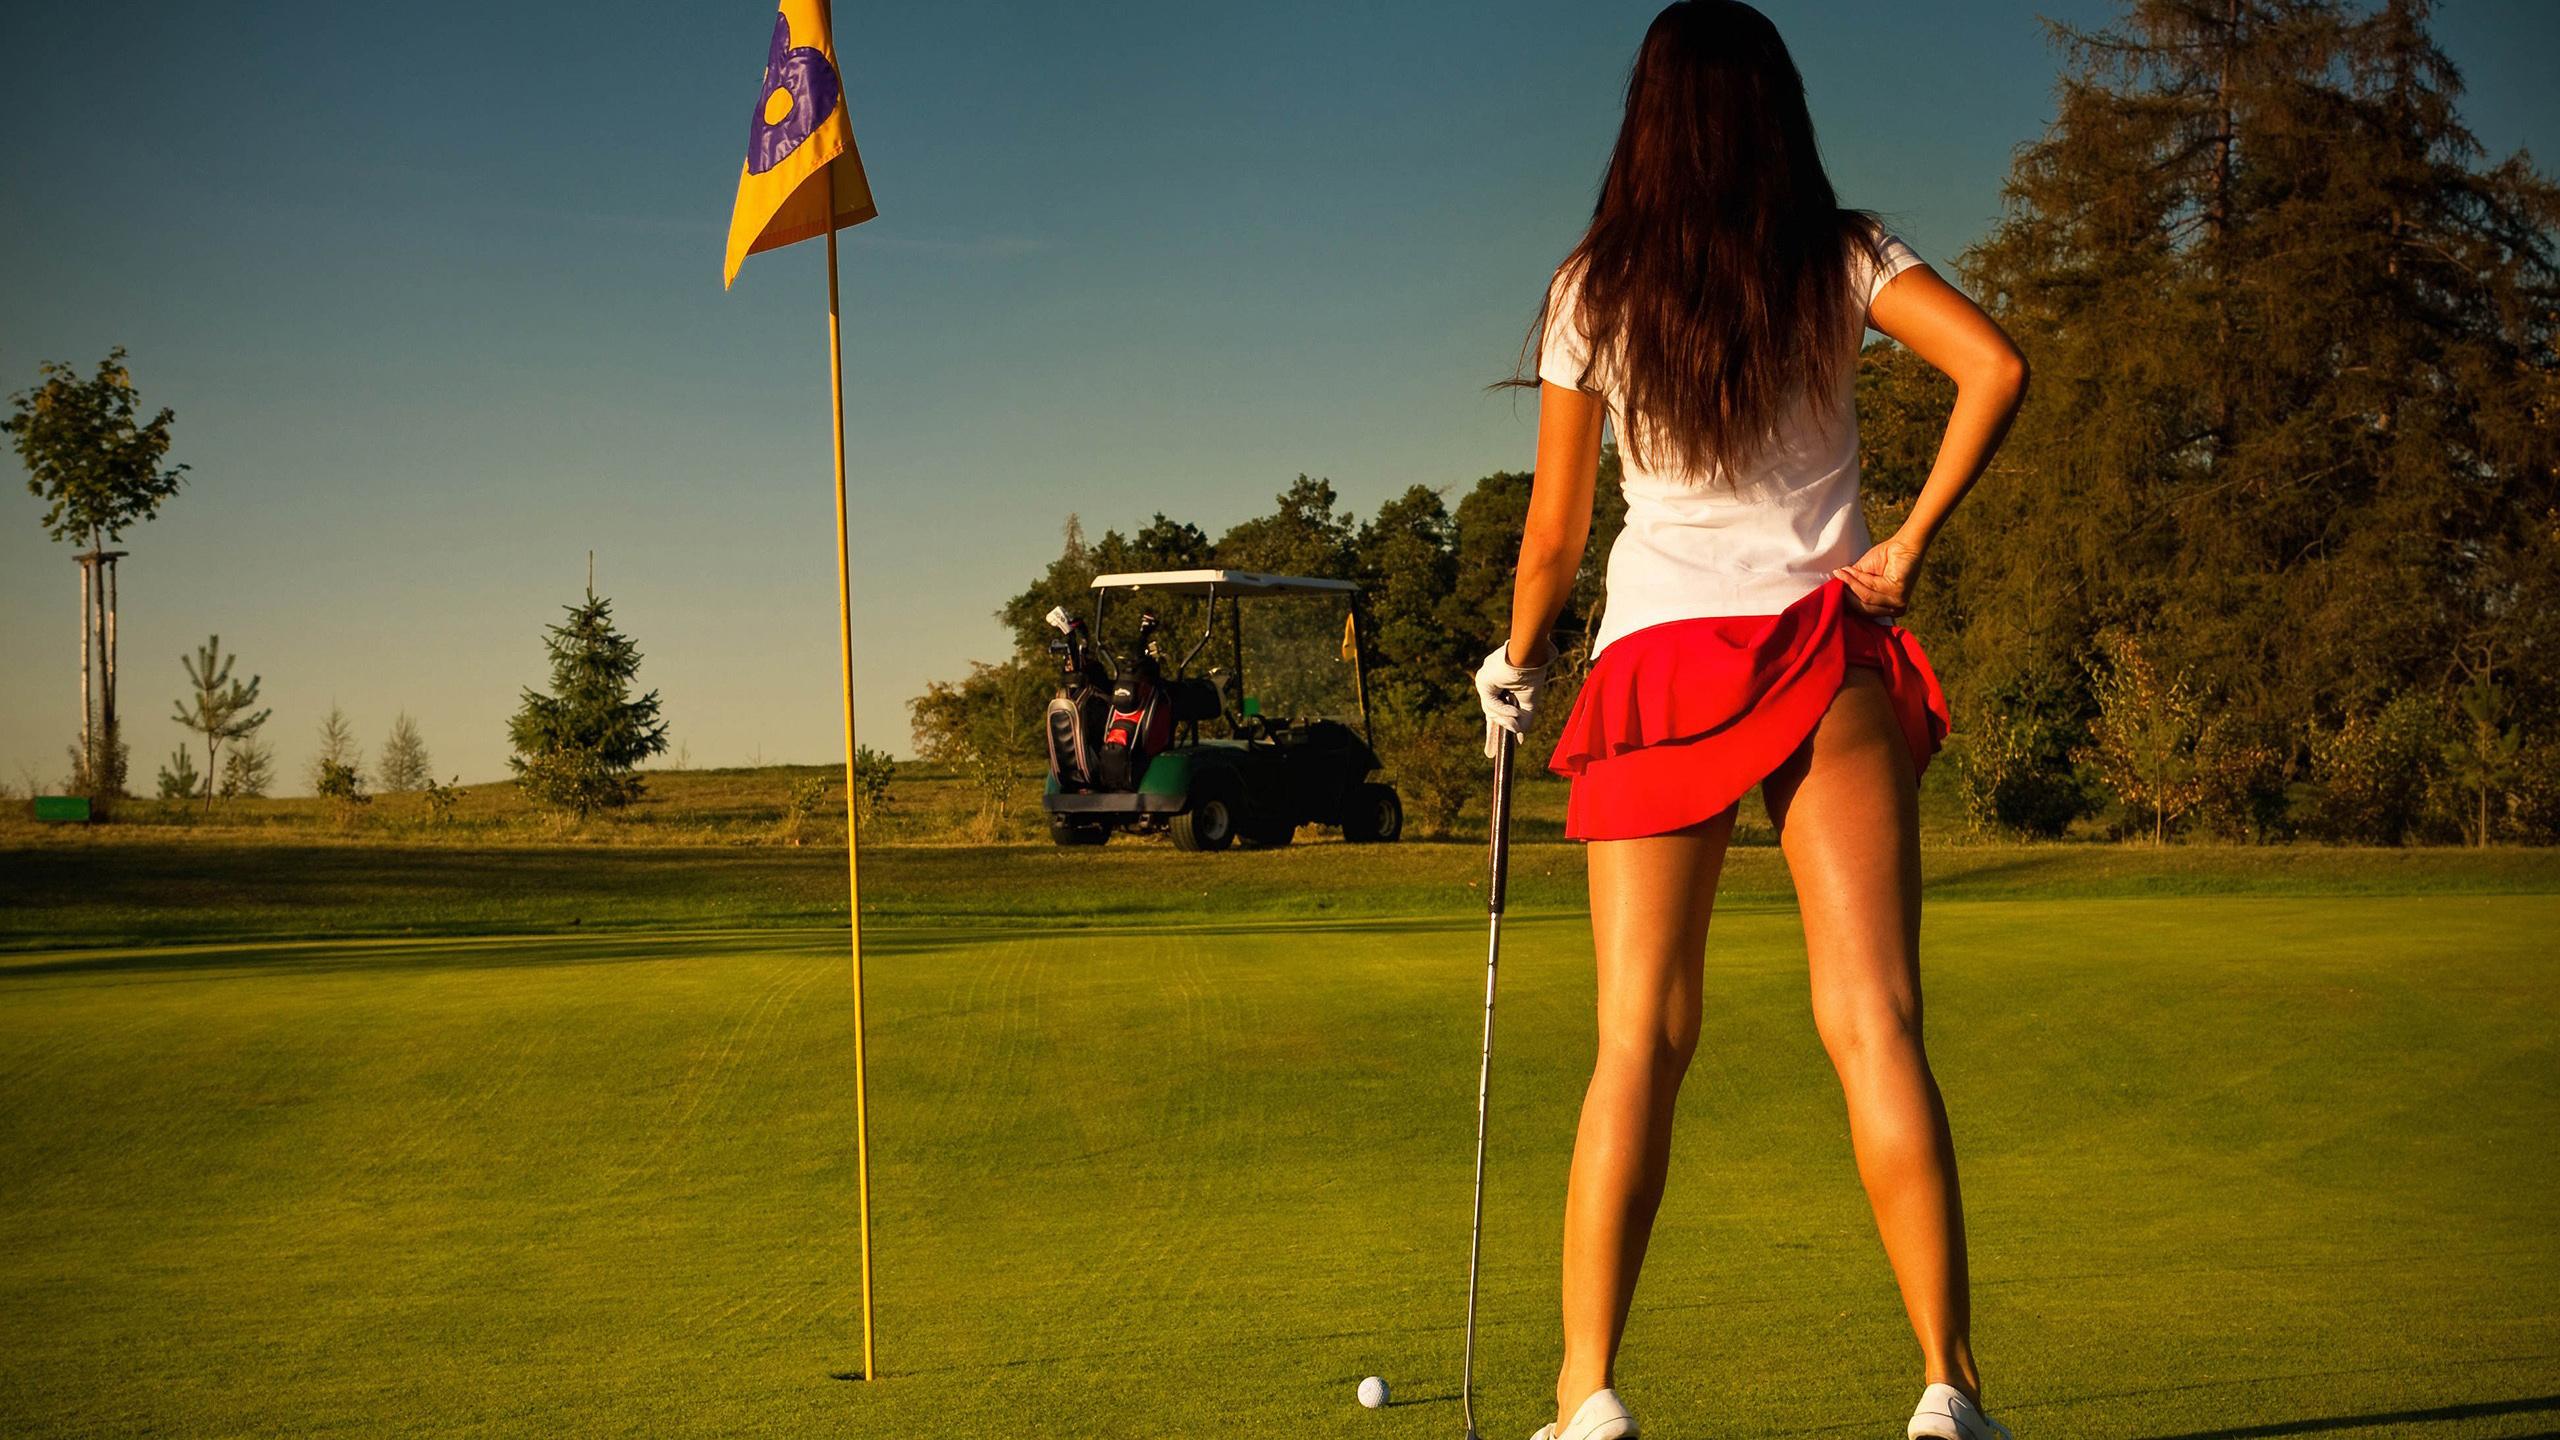 Naked sexy golf butt oral sexy